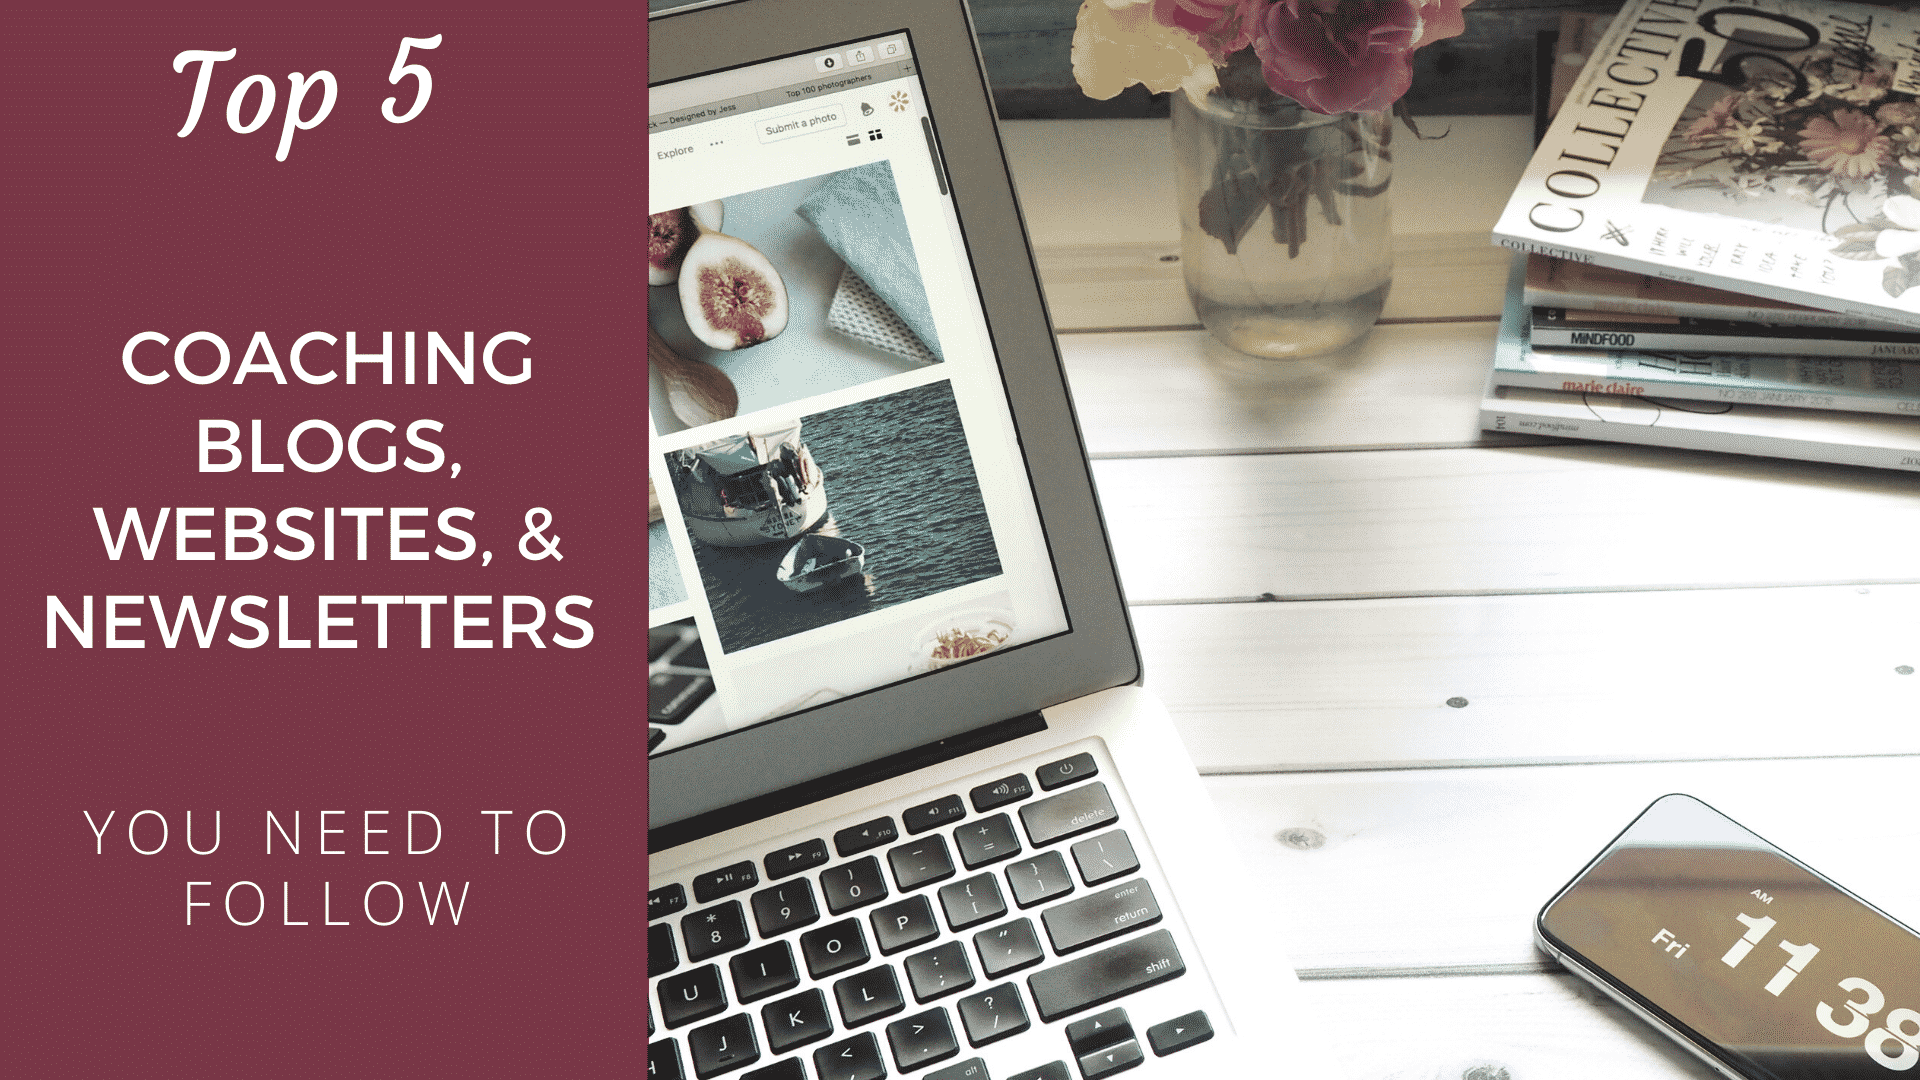 Top 5 Coaching Blogs, Websites, and Newsletters You Need to Follow in 2020